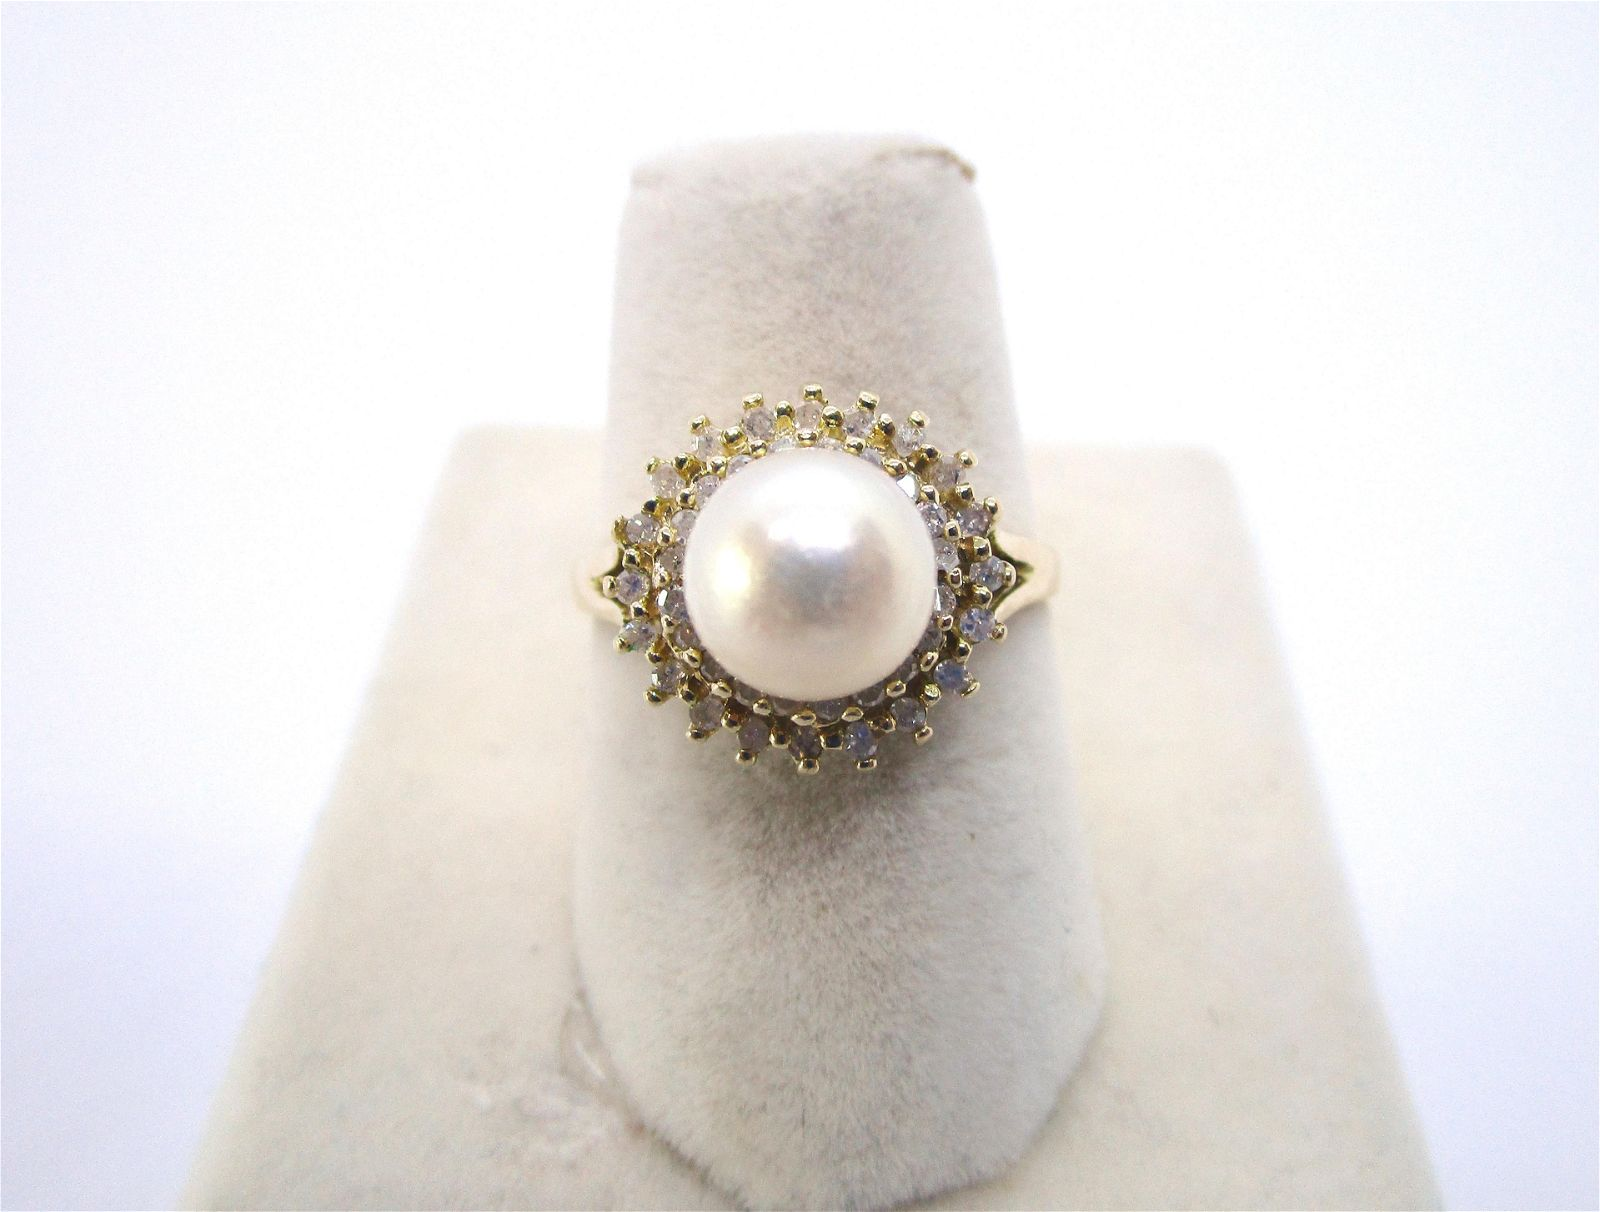 7.5MM PEARL AND .50CT DIAMOND RING 14K GOLD